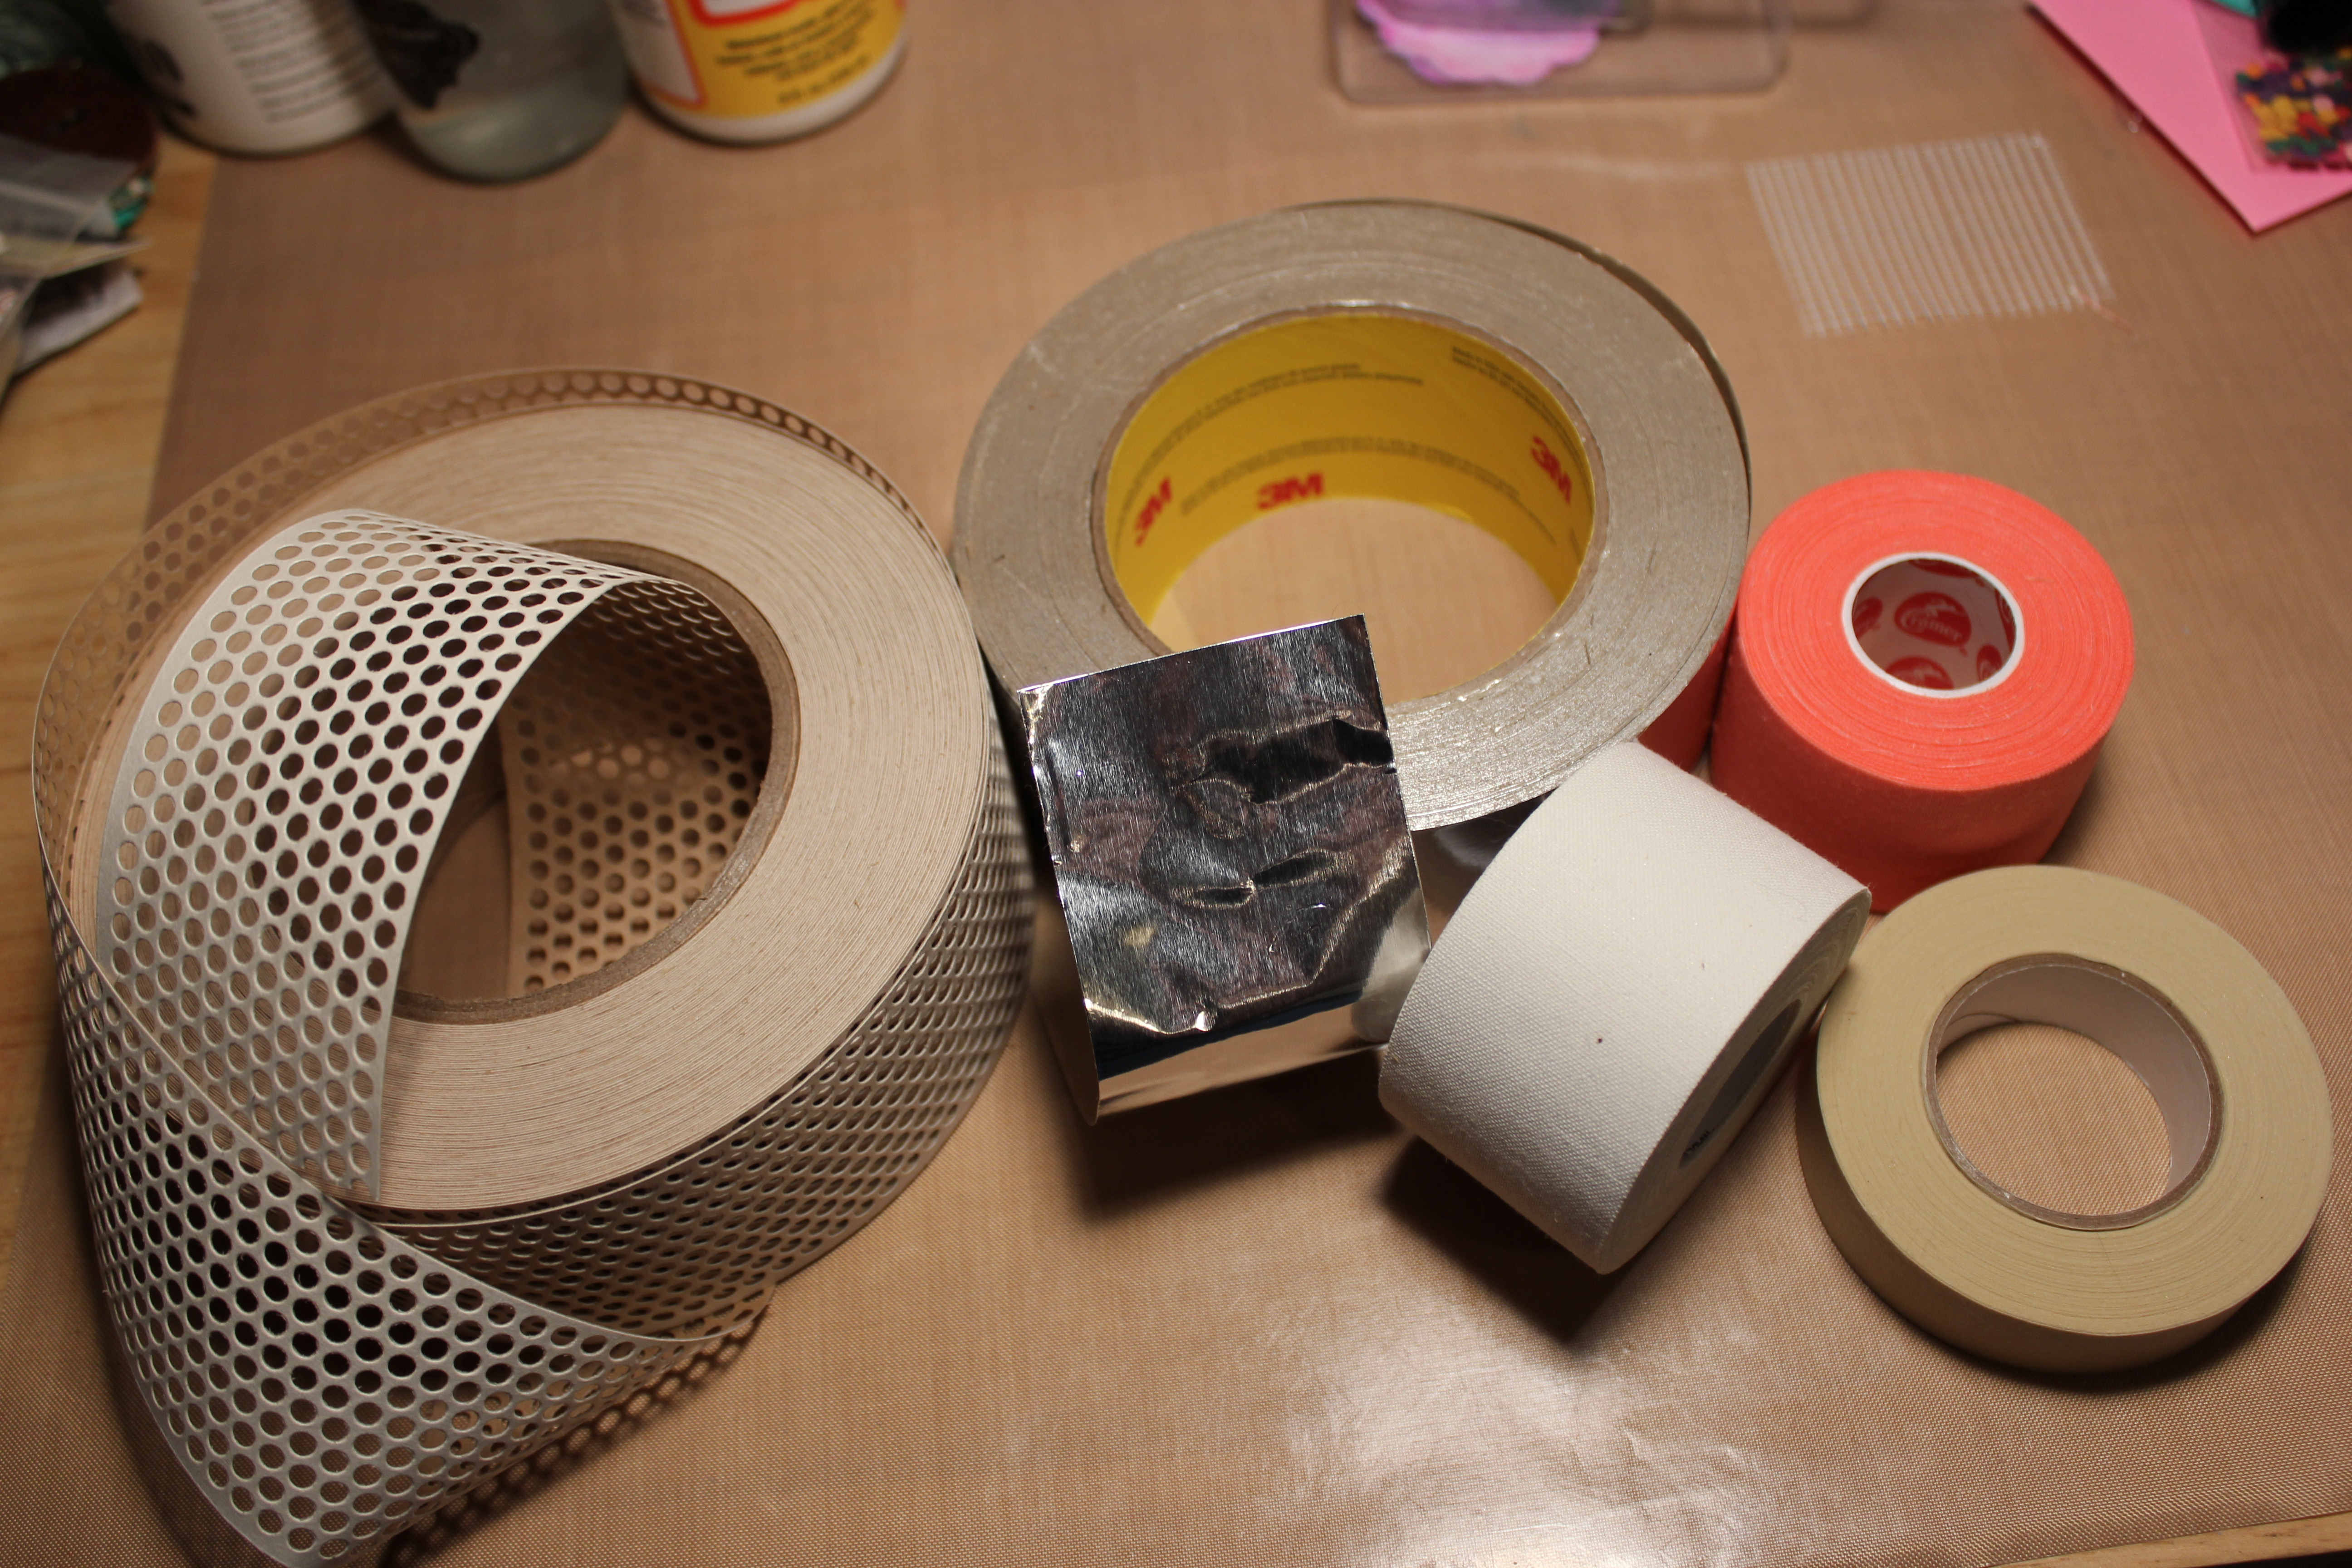 Drywall tape blue crafty on the far left is some tape stuff with circles this is also drywall tape it is white paper with an adhesive back youll find it right next to the mesh jeuxipadfo Image collections